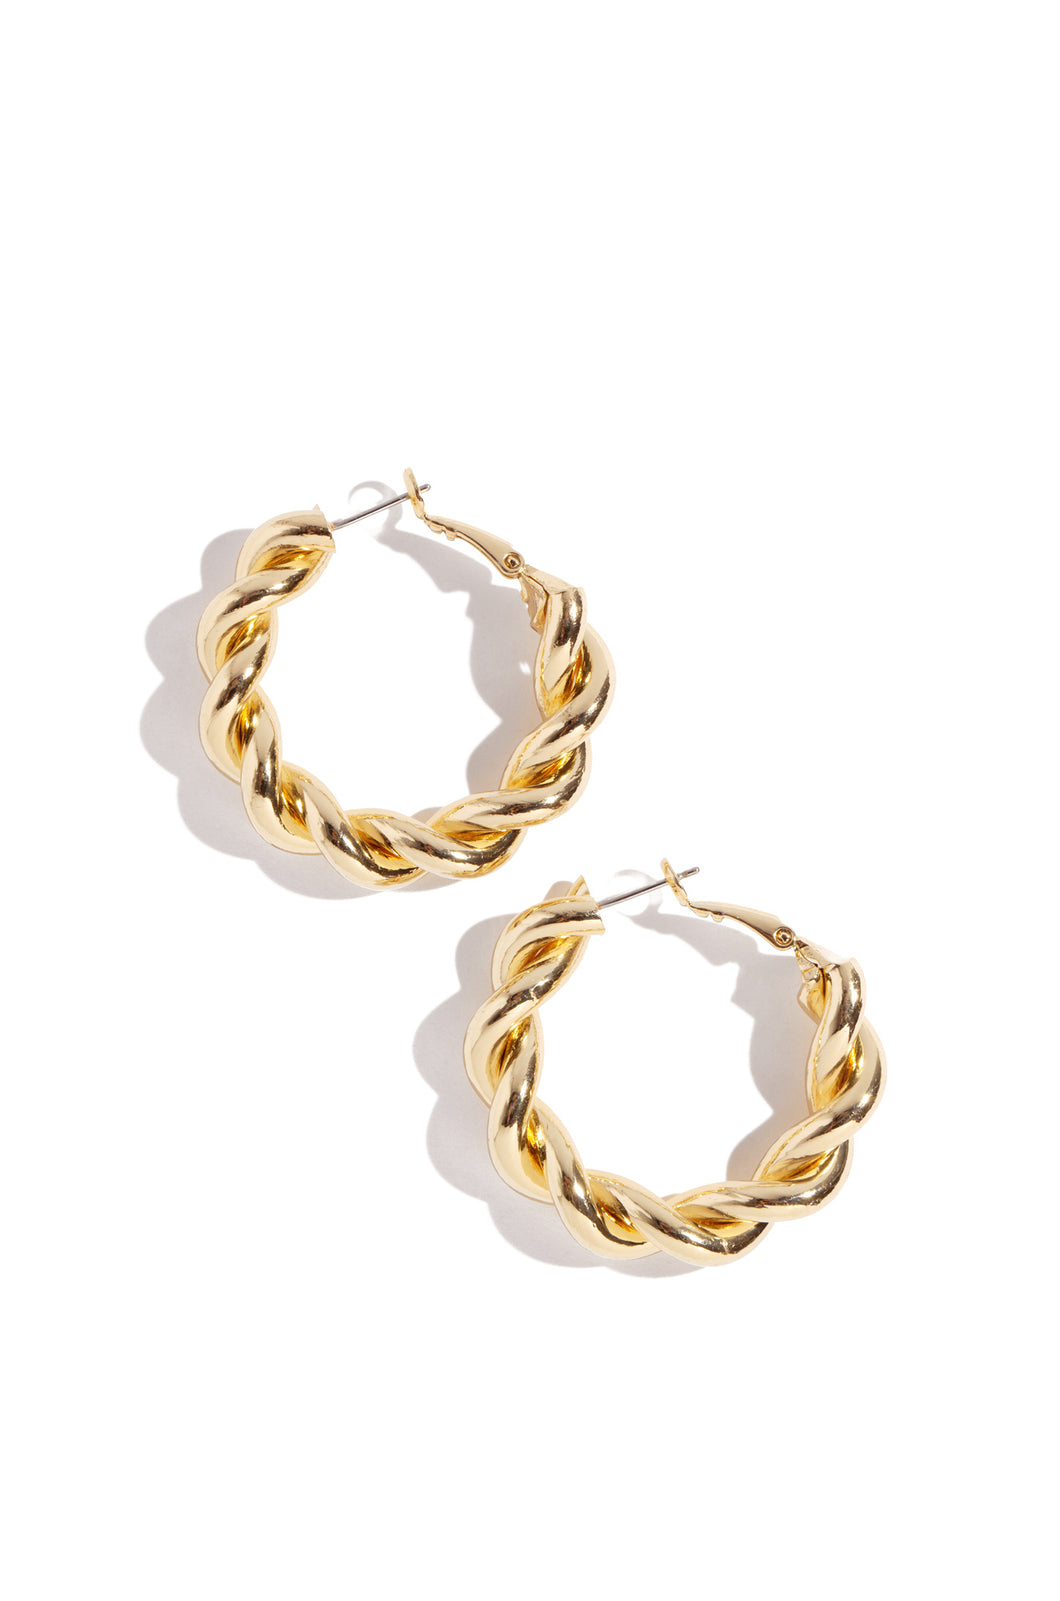 Brielle Earring - 1.5